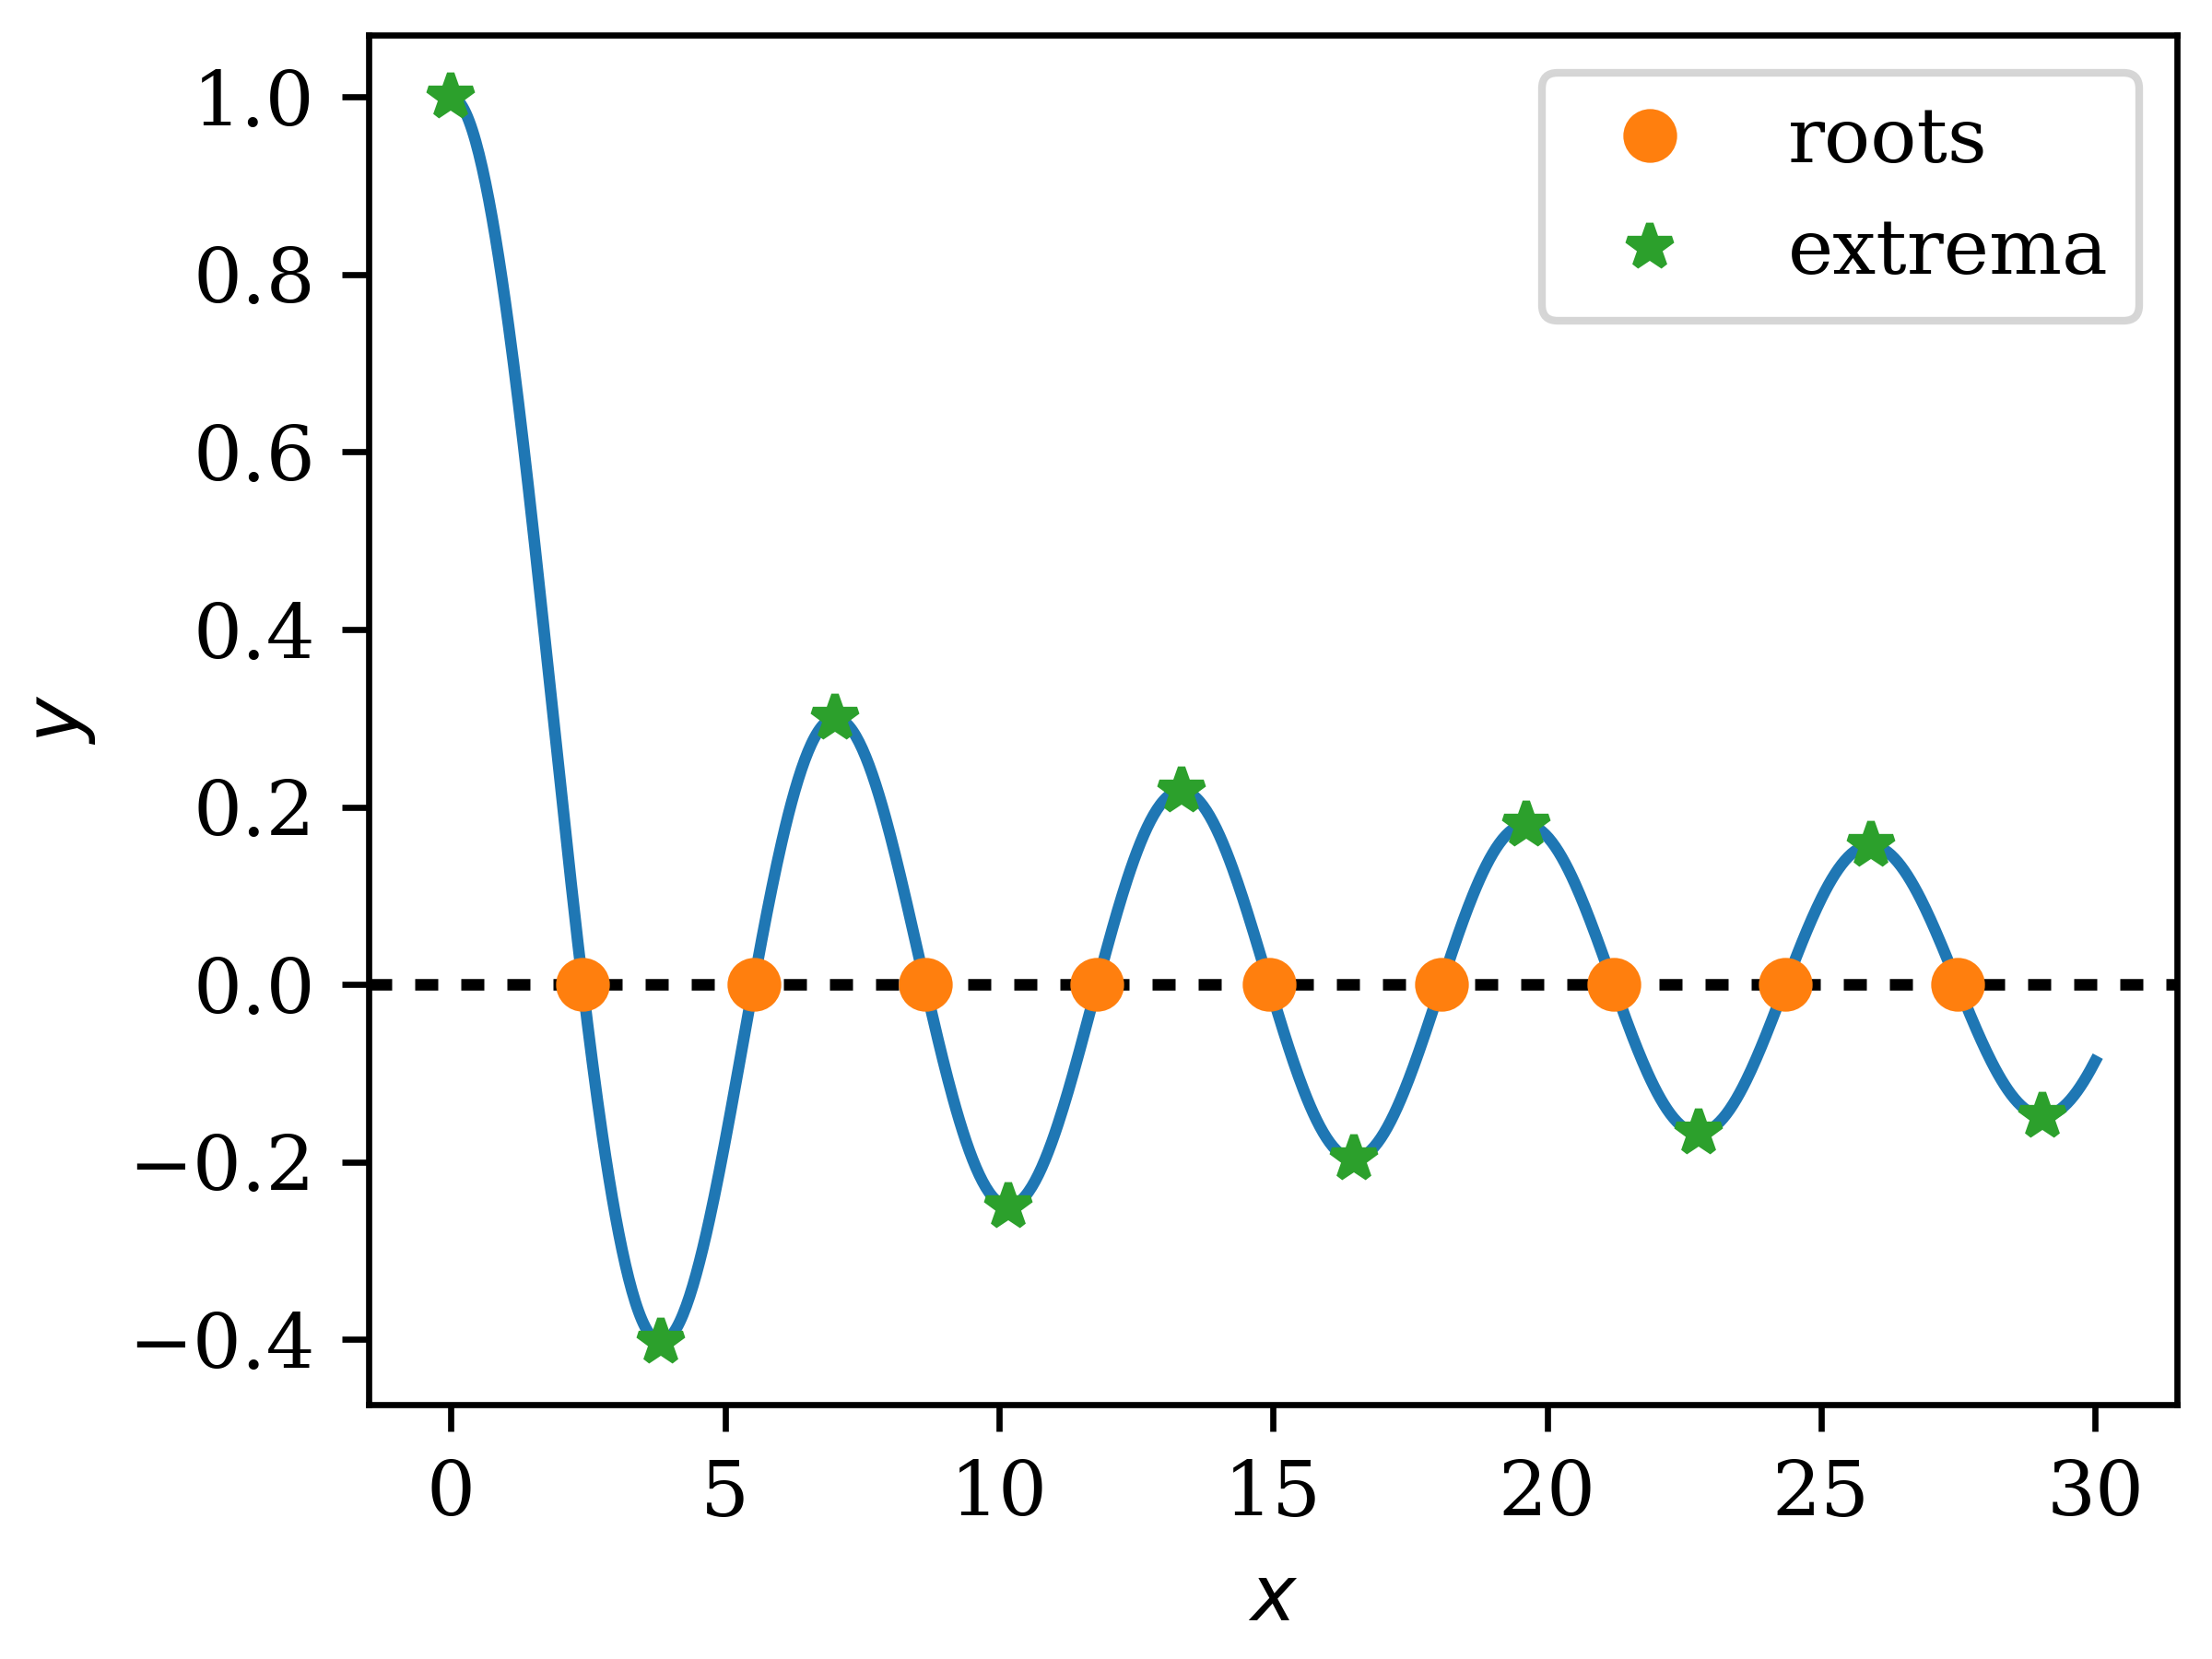 Roots and extrema of the 0-th Bessel function